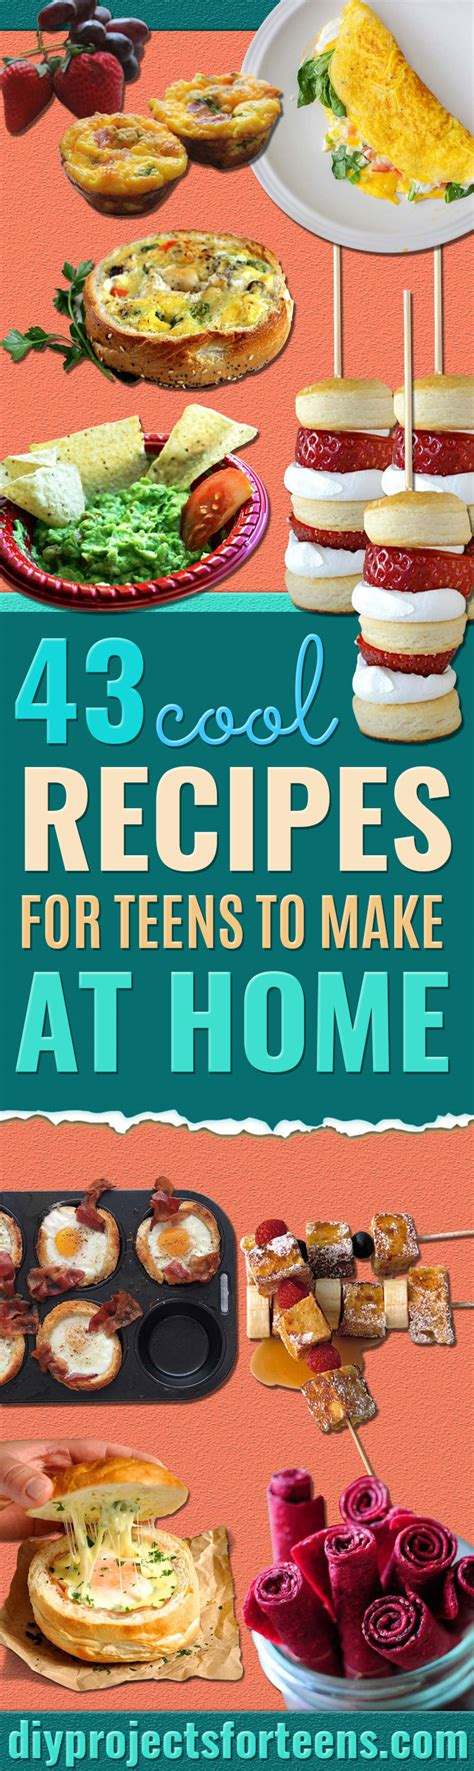 Food To Make At Home by 43 Cool Recipes For To Make At Home Diy Projects